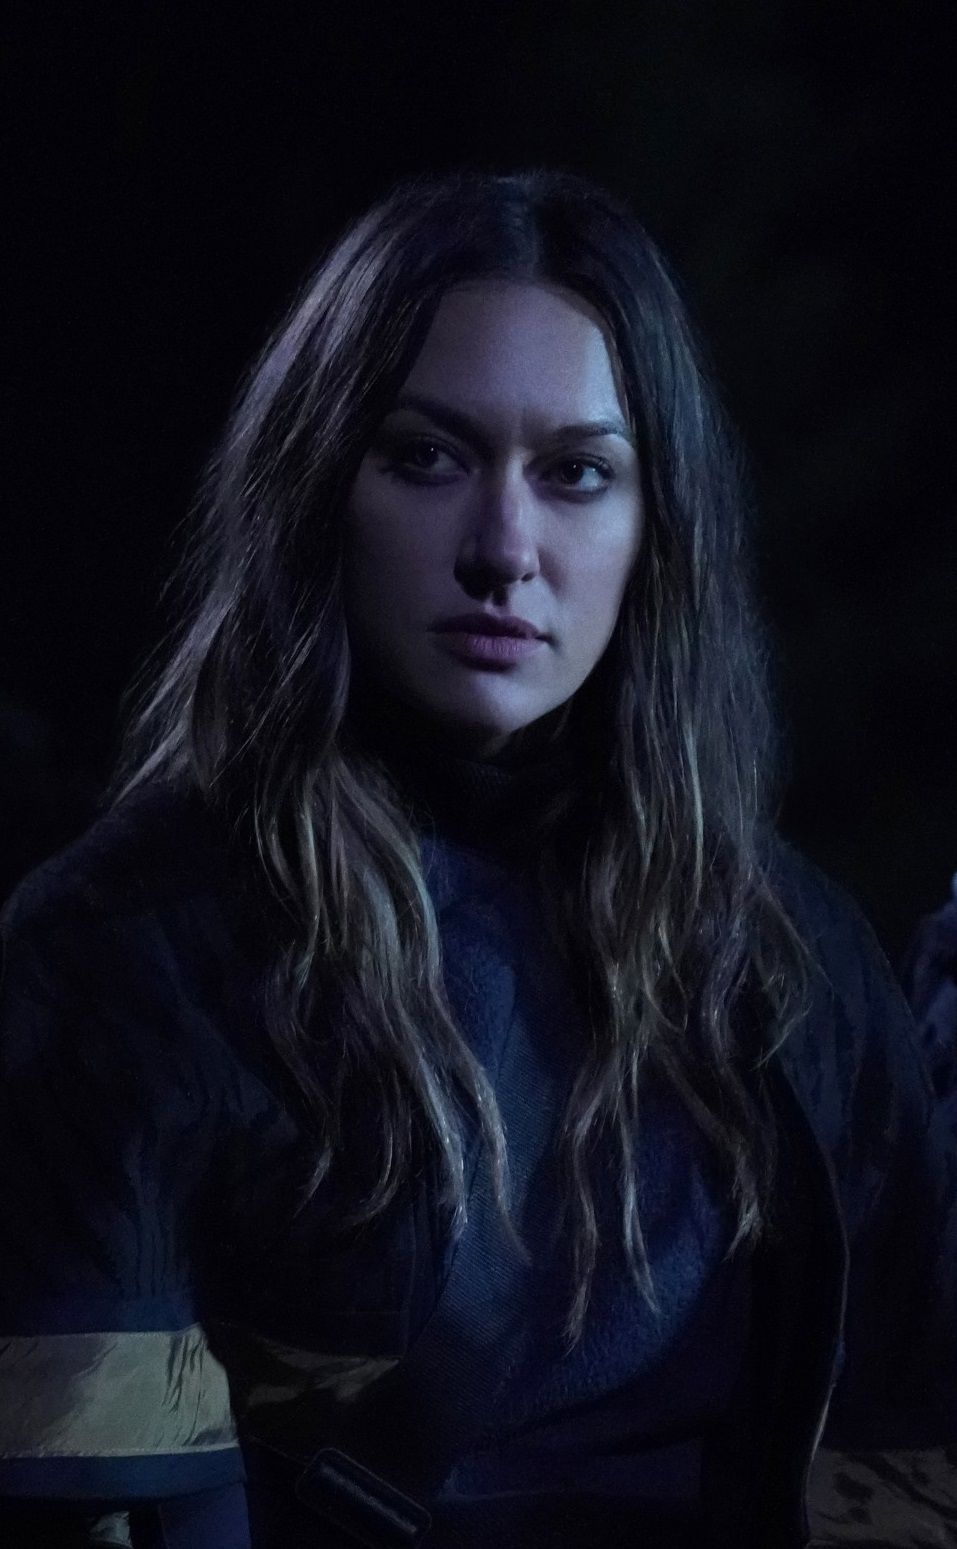 Echo The 100 Wiki Fandom Powered By Wikia In 2020 The 100 Characters The 100 Show The 100 Cast